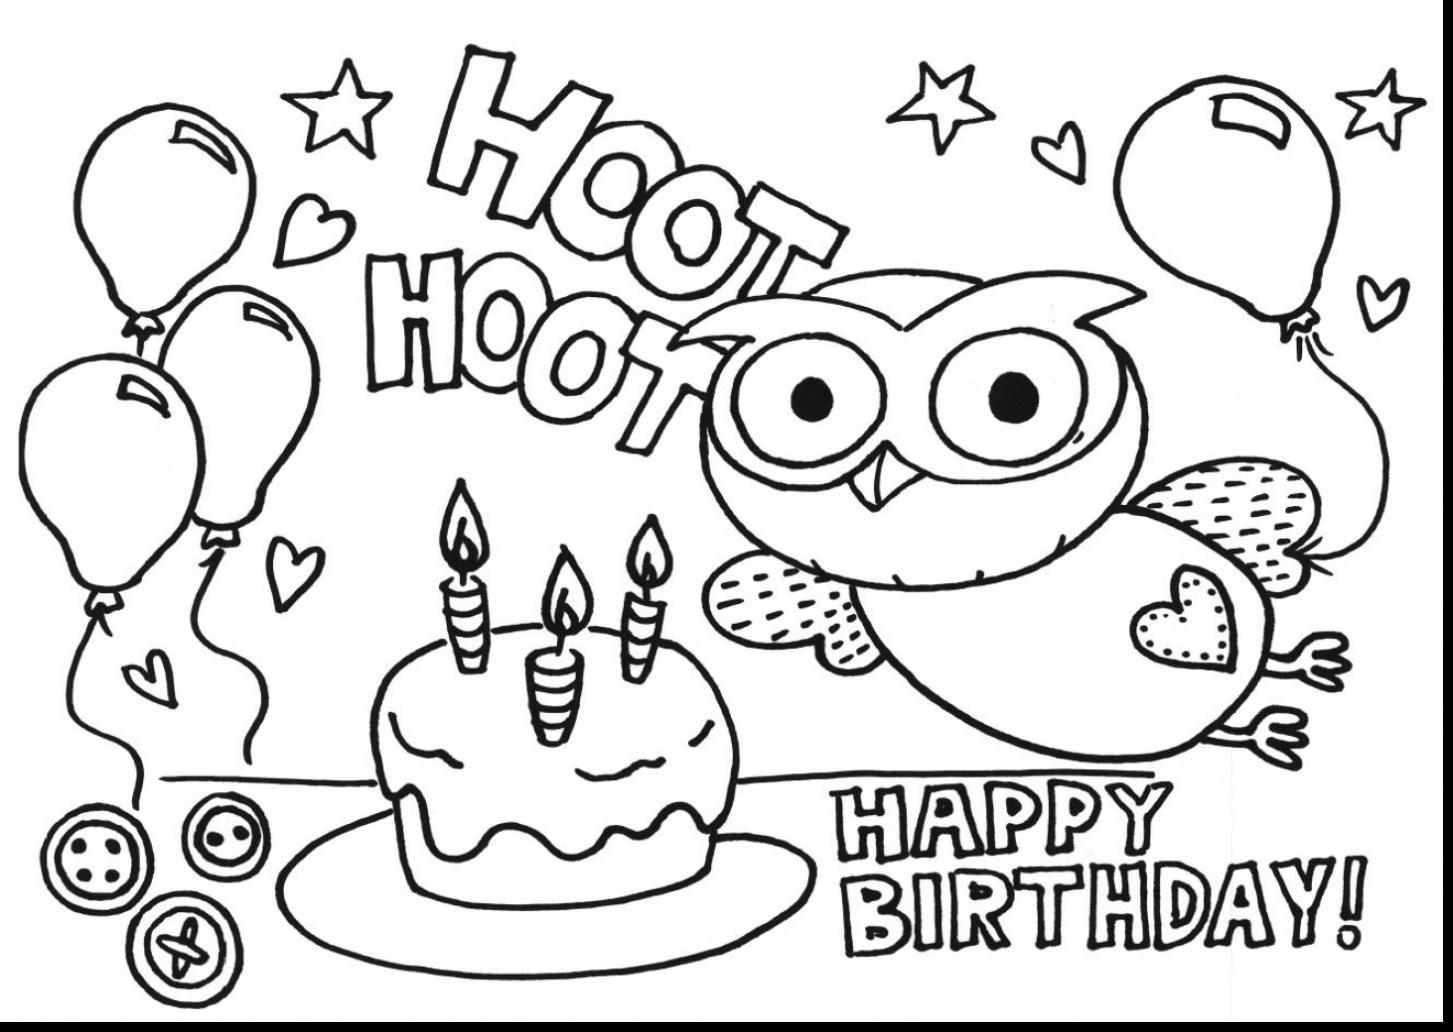 my little pony happy birthday coloring page ; startling-happy-birthday-coloring-page-awesome-pages-with-cake